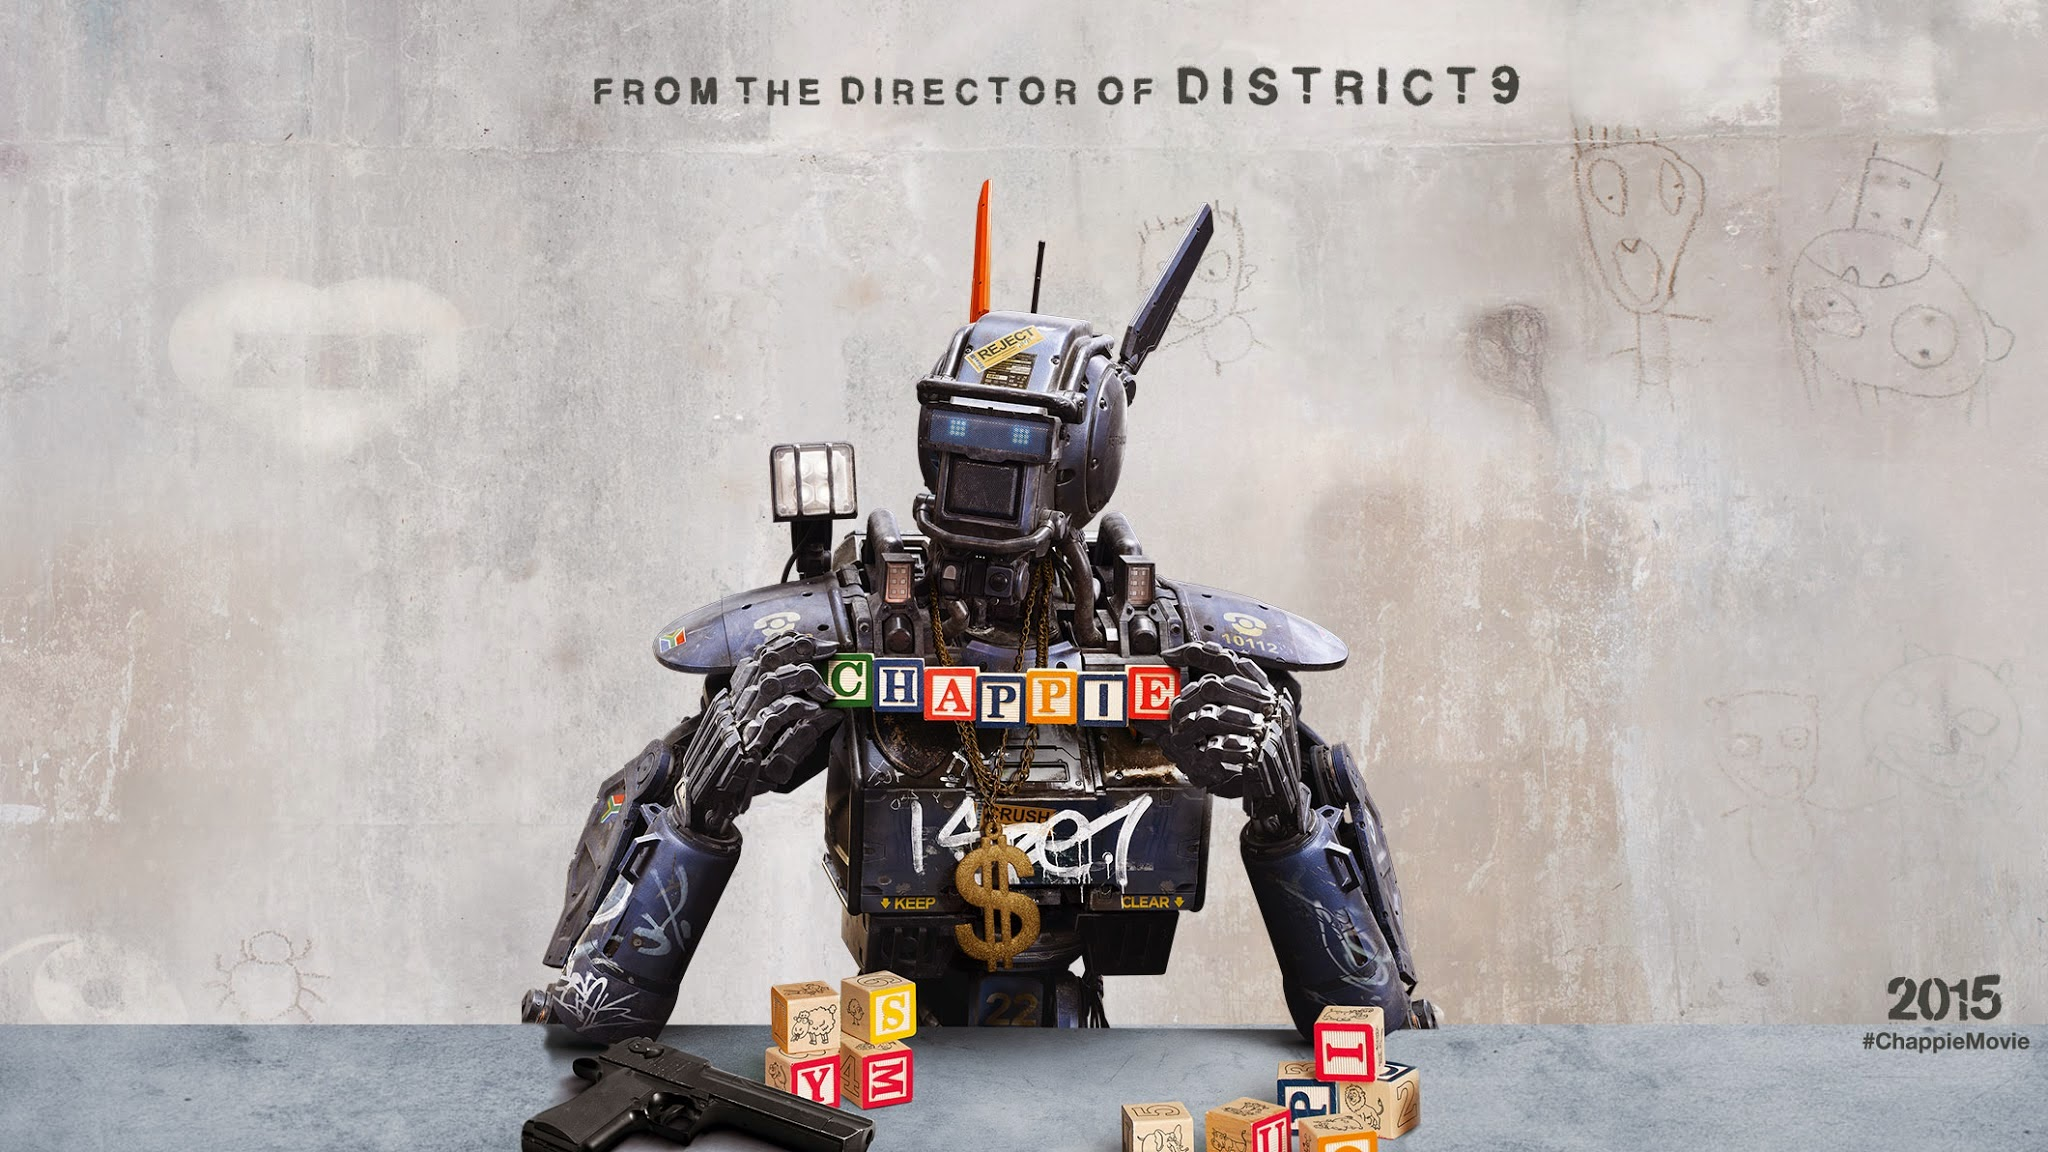 Chappie Wallpapers Download T715T95   4USkY 2048x1152